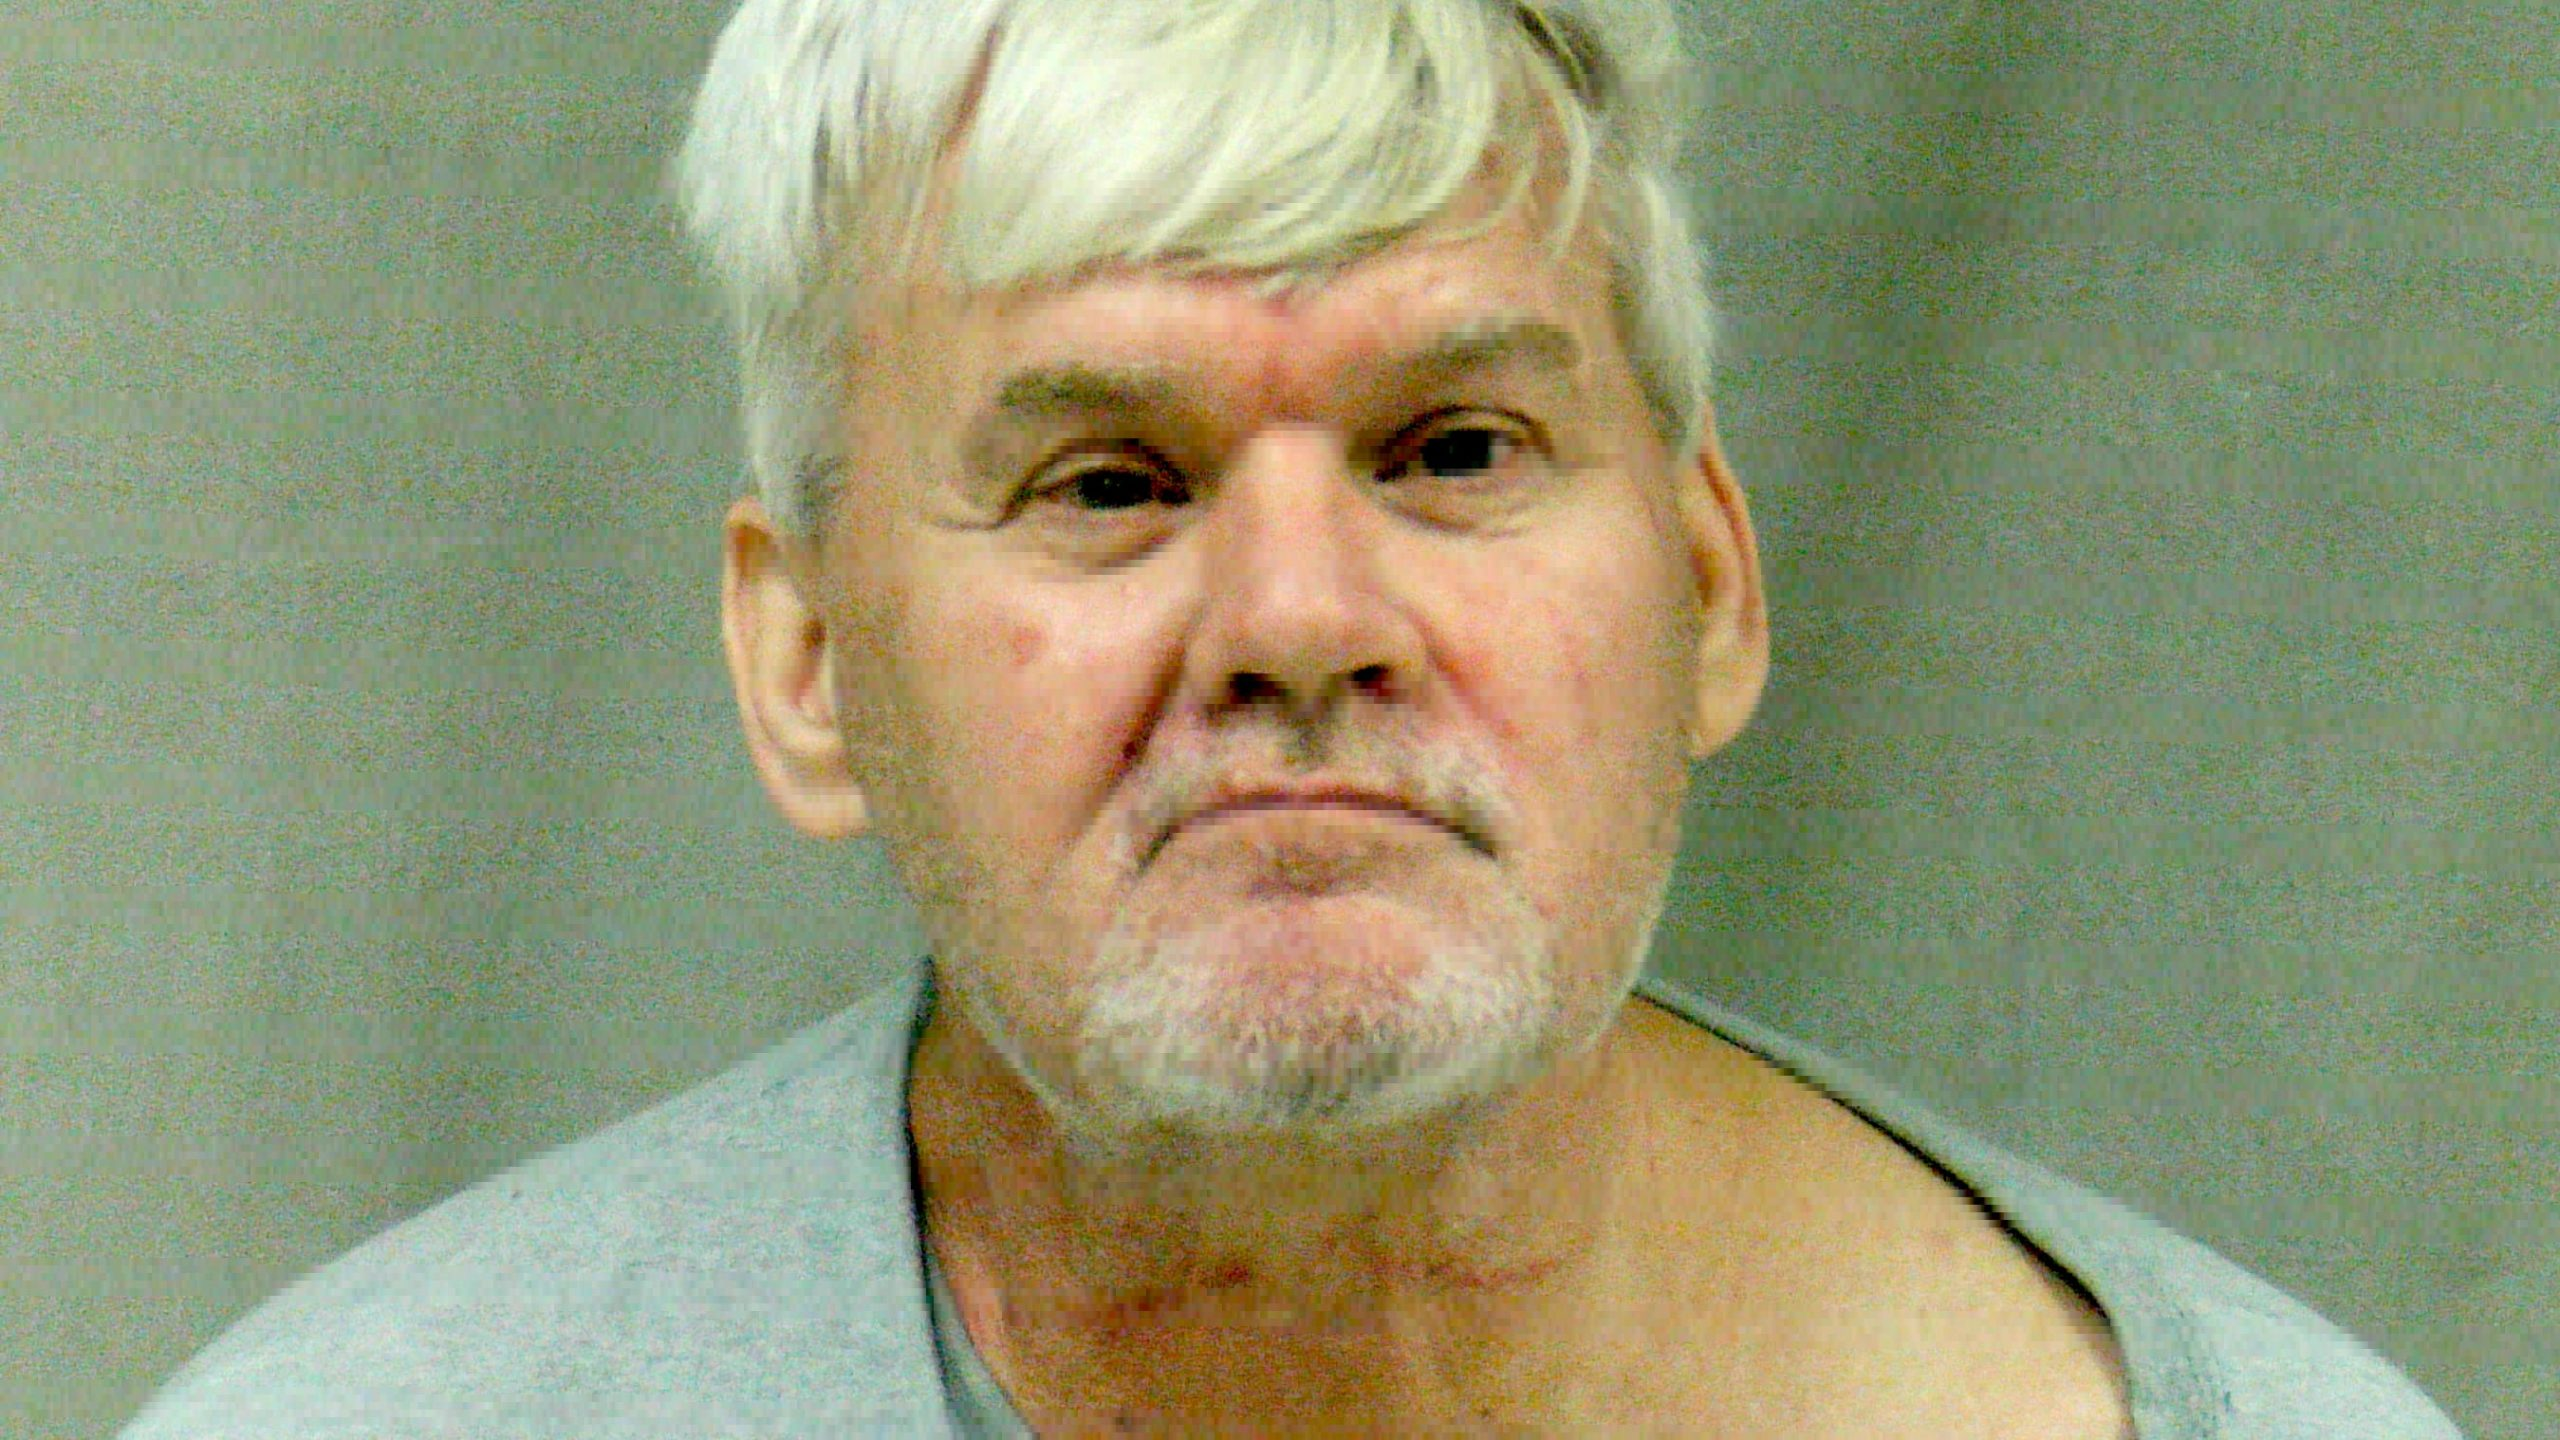 Logan man charged with strangulation, attempted sexual assault